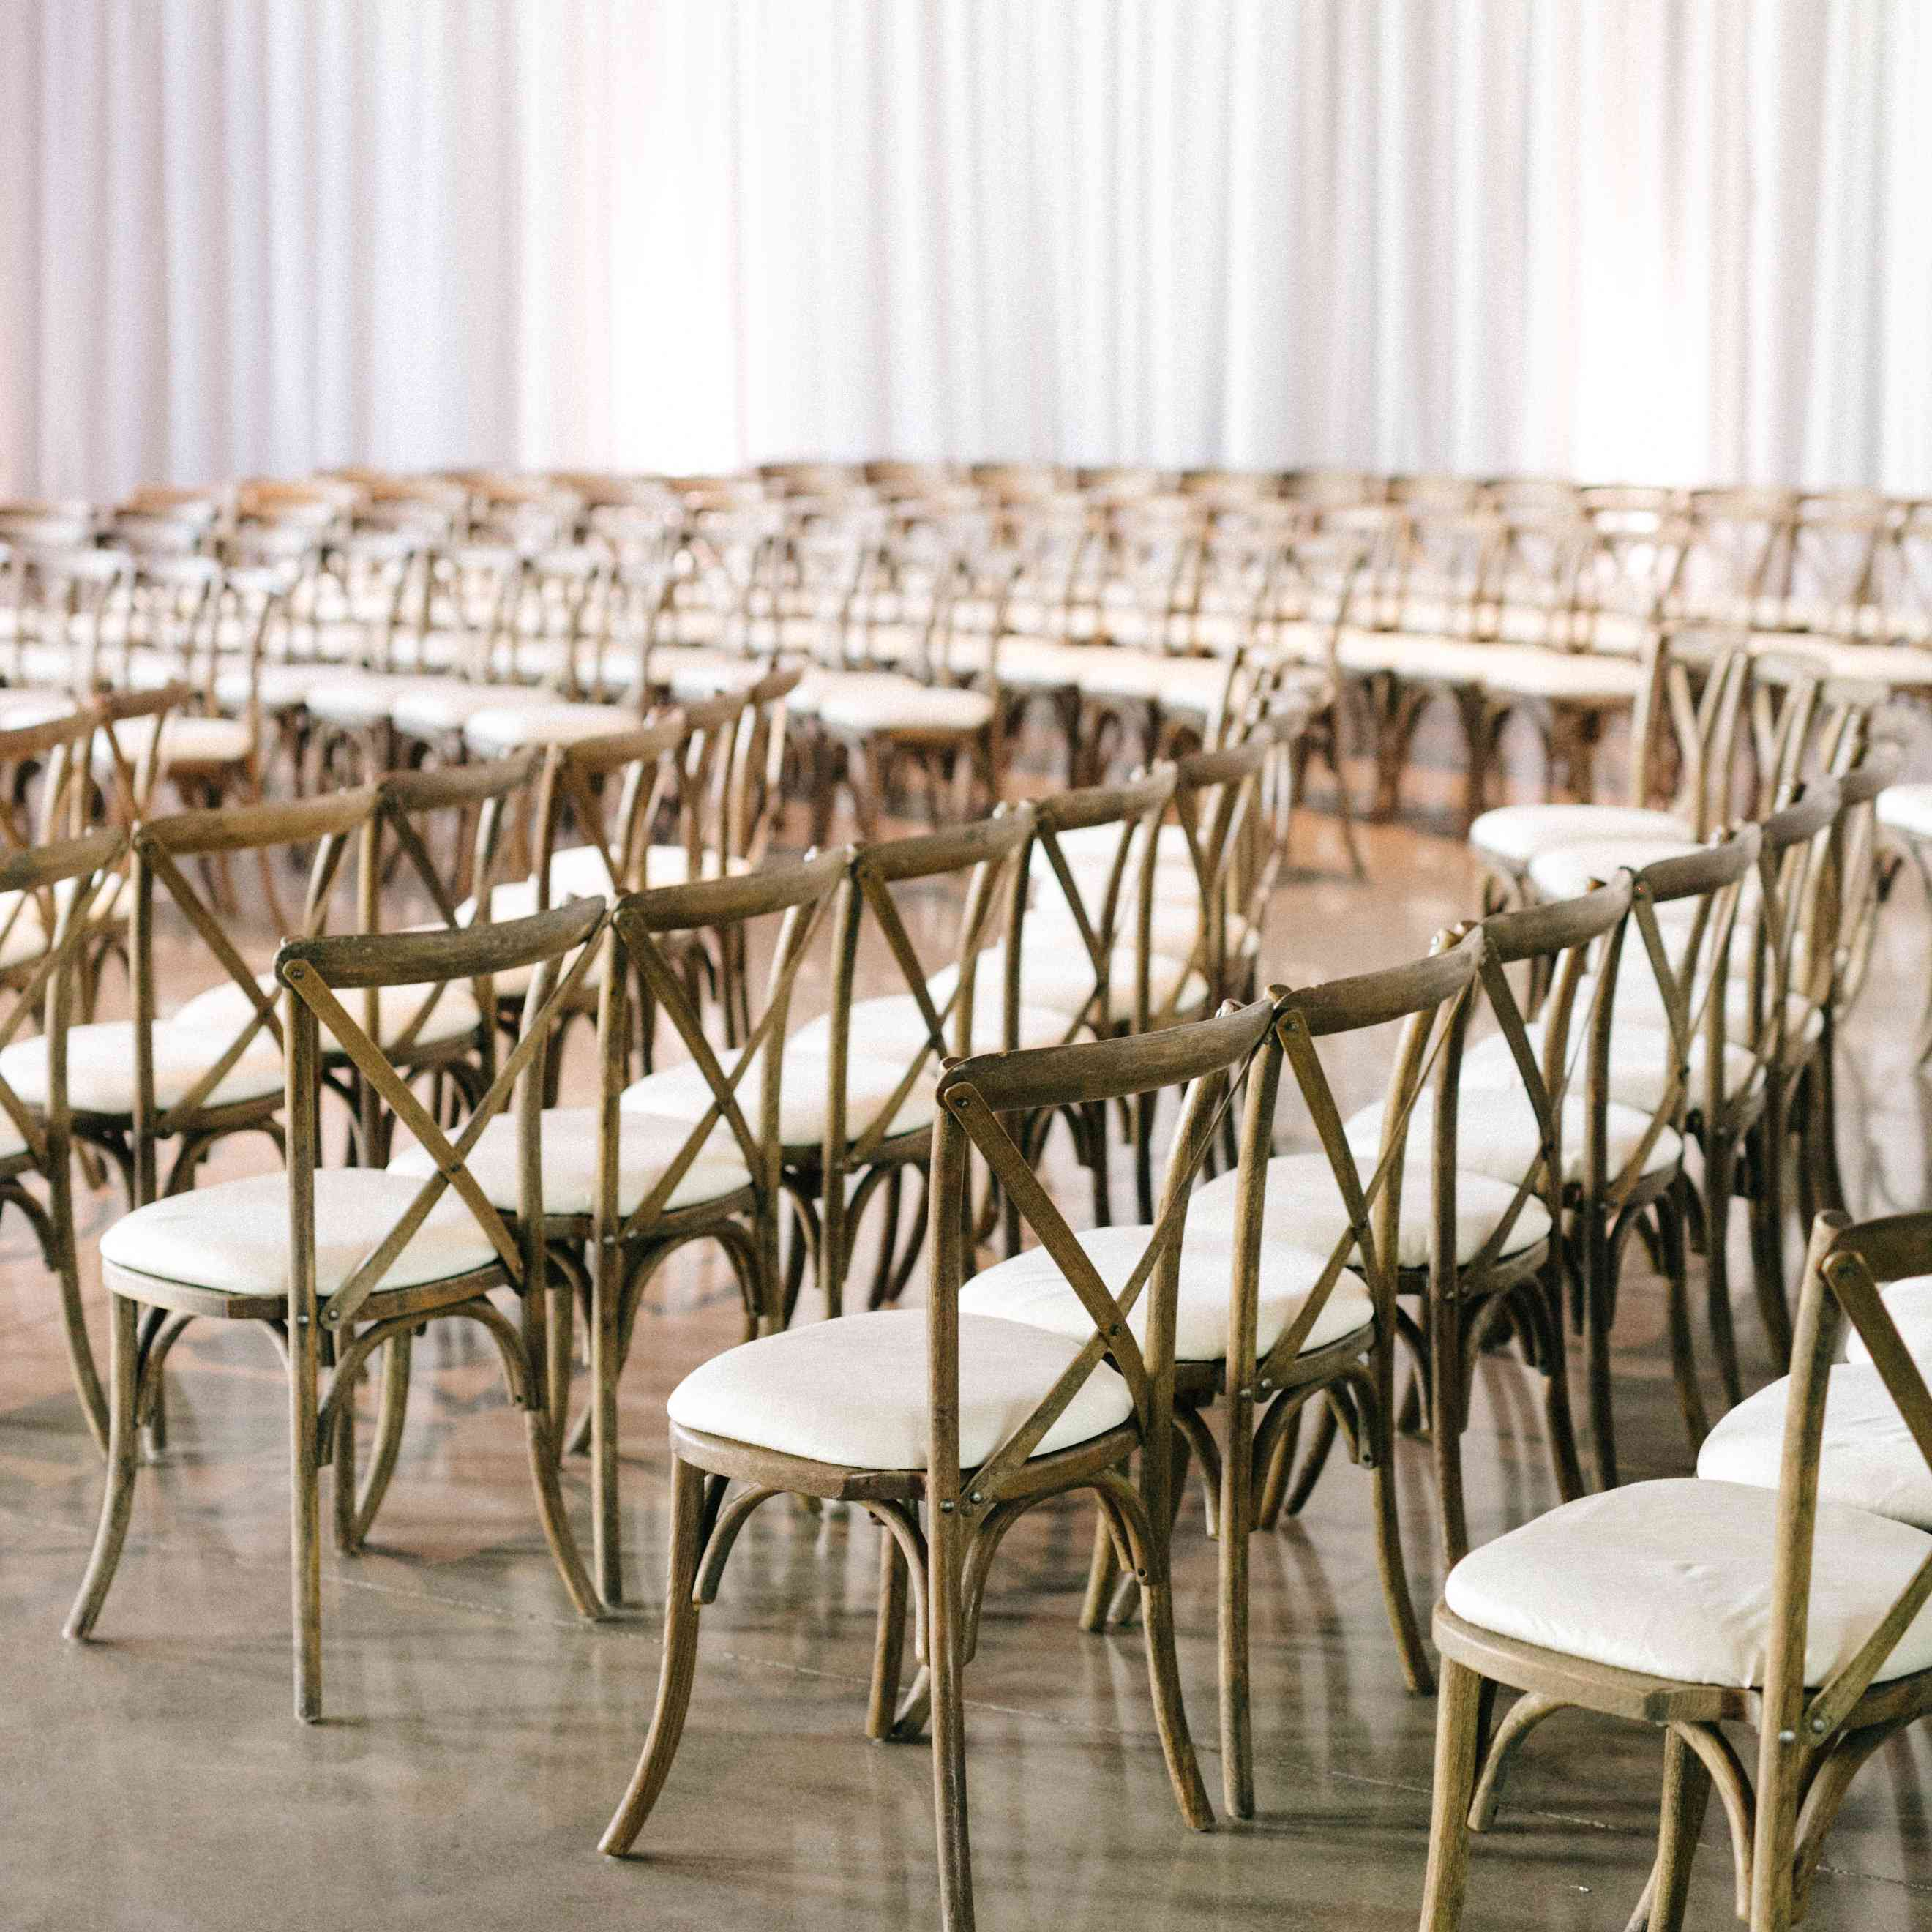 <p>Chairs at ceremony</p><br><br>